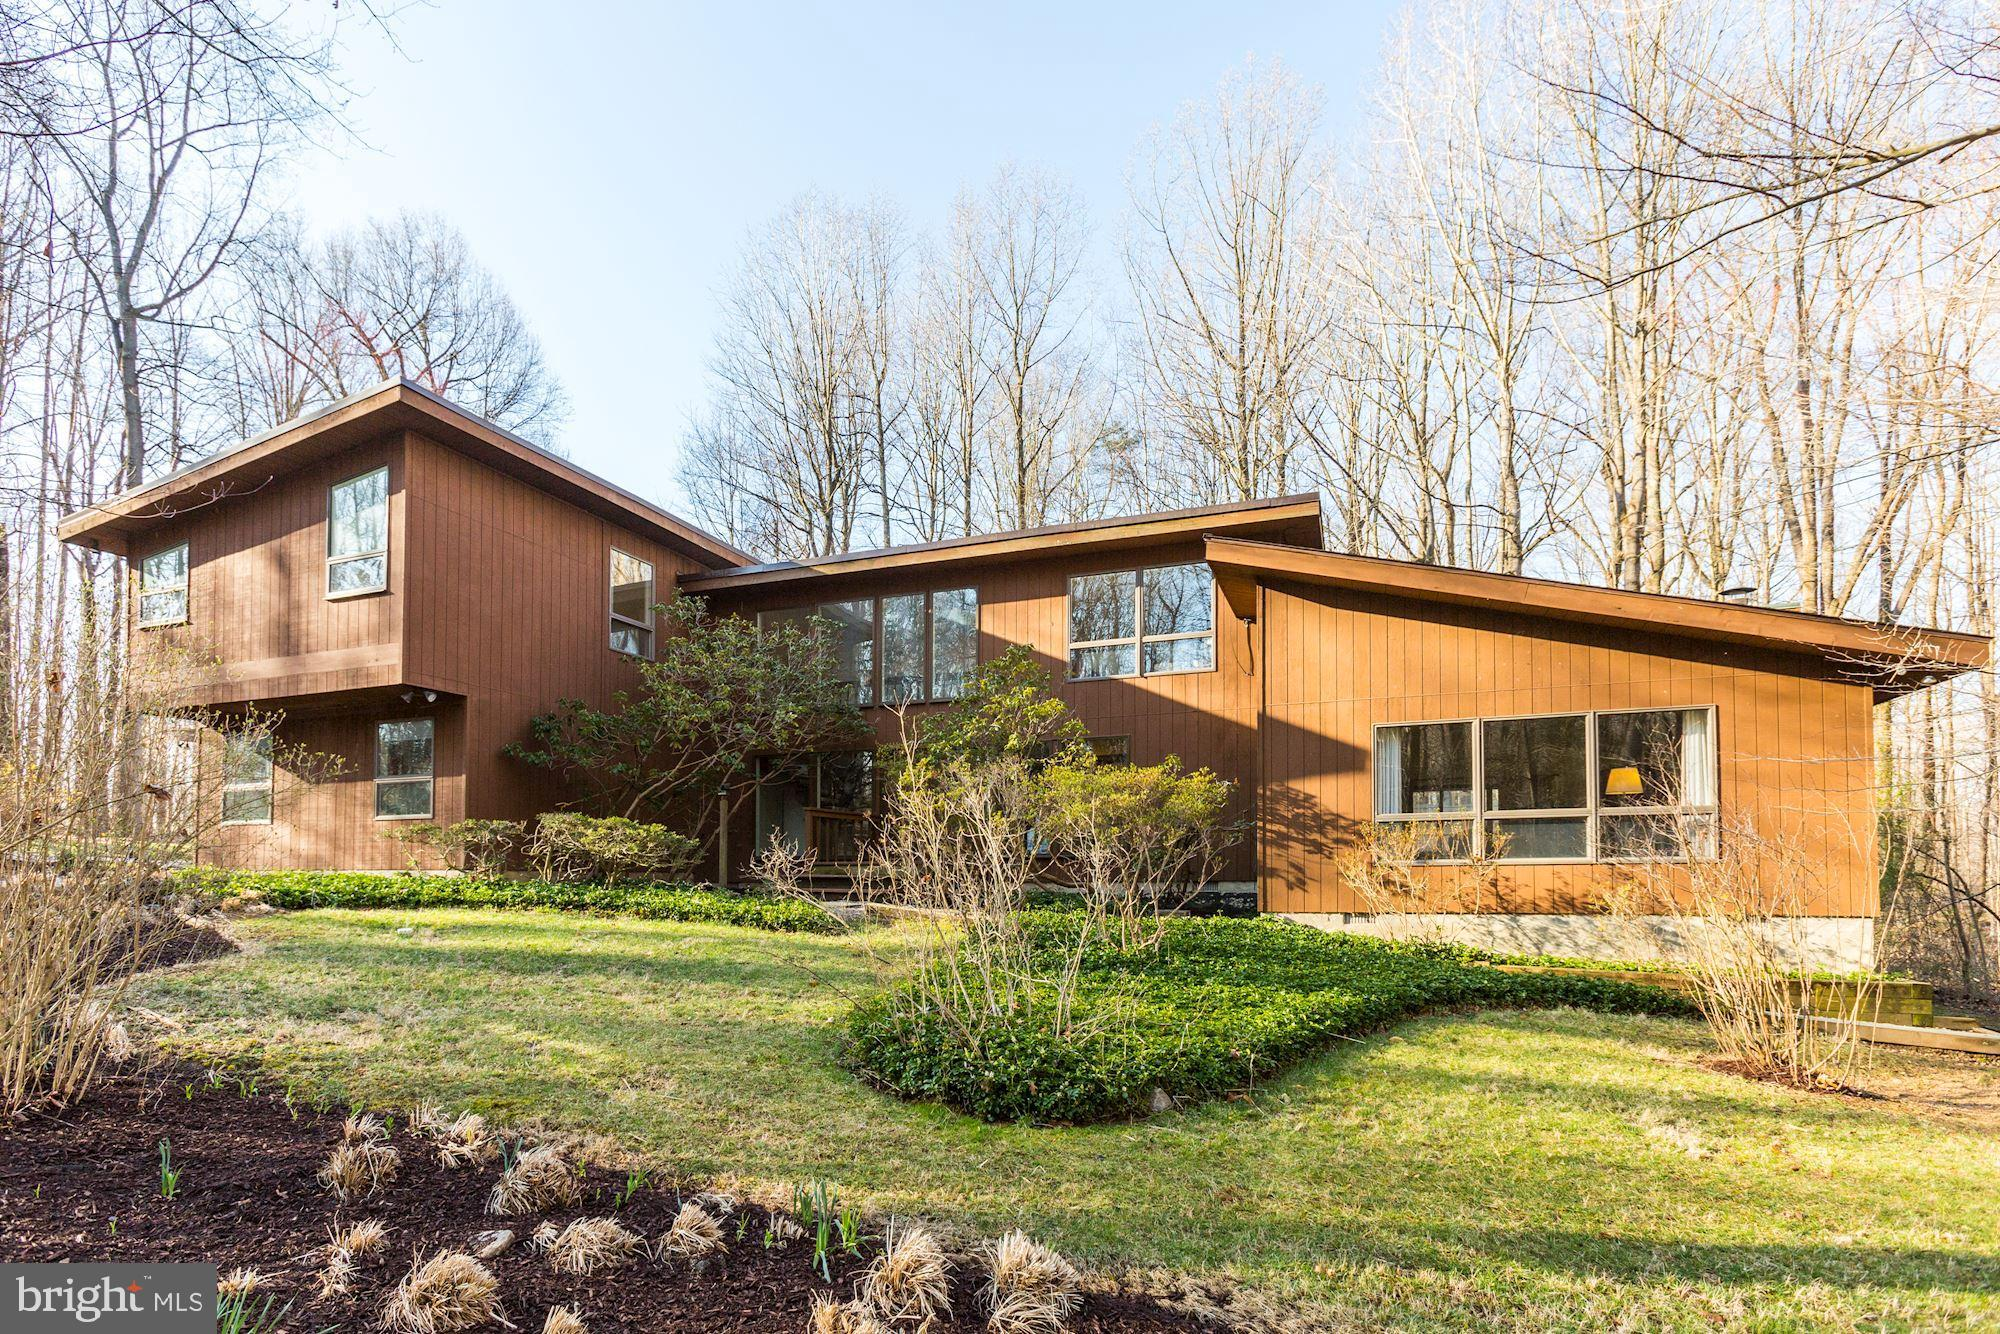 7165 DEER VALLEY ROAD, HIGHLAND, MD 20777